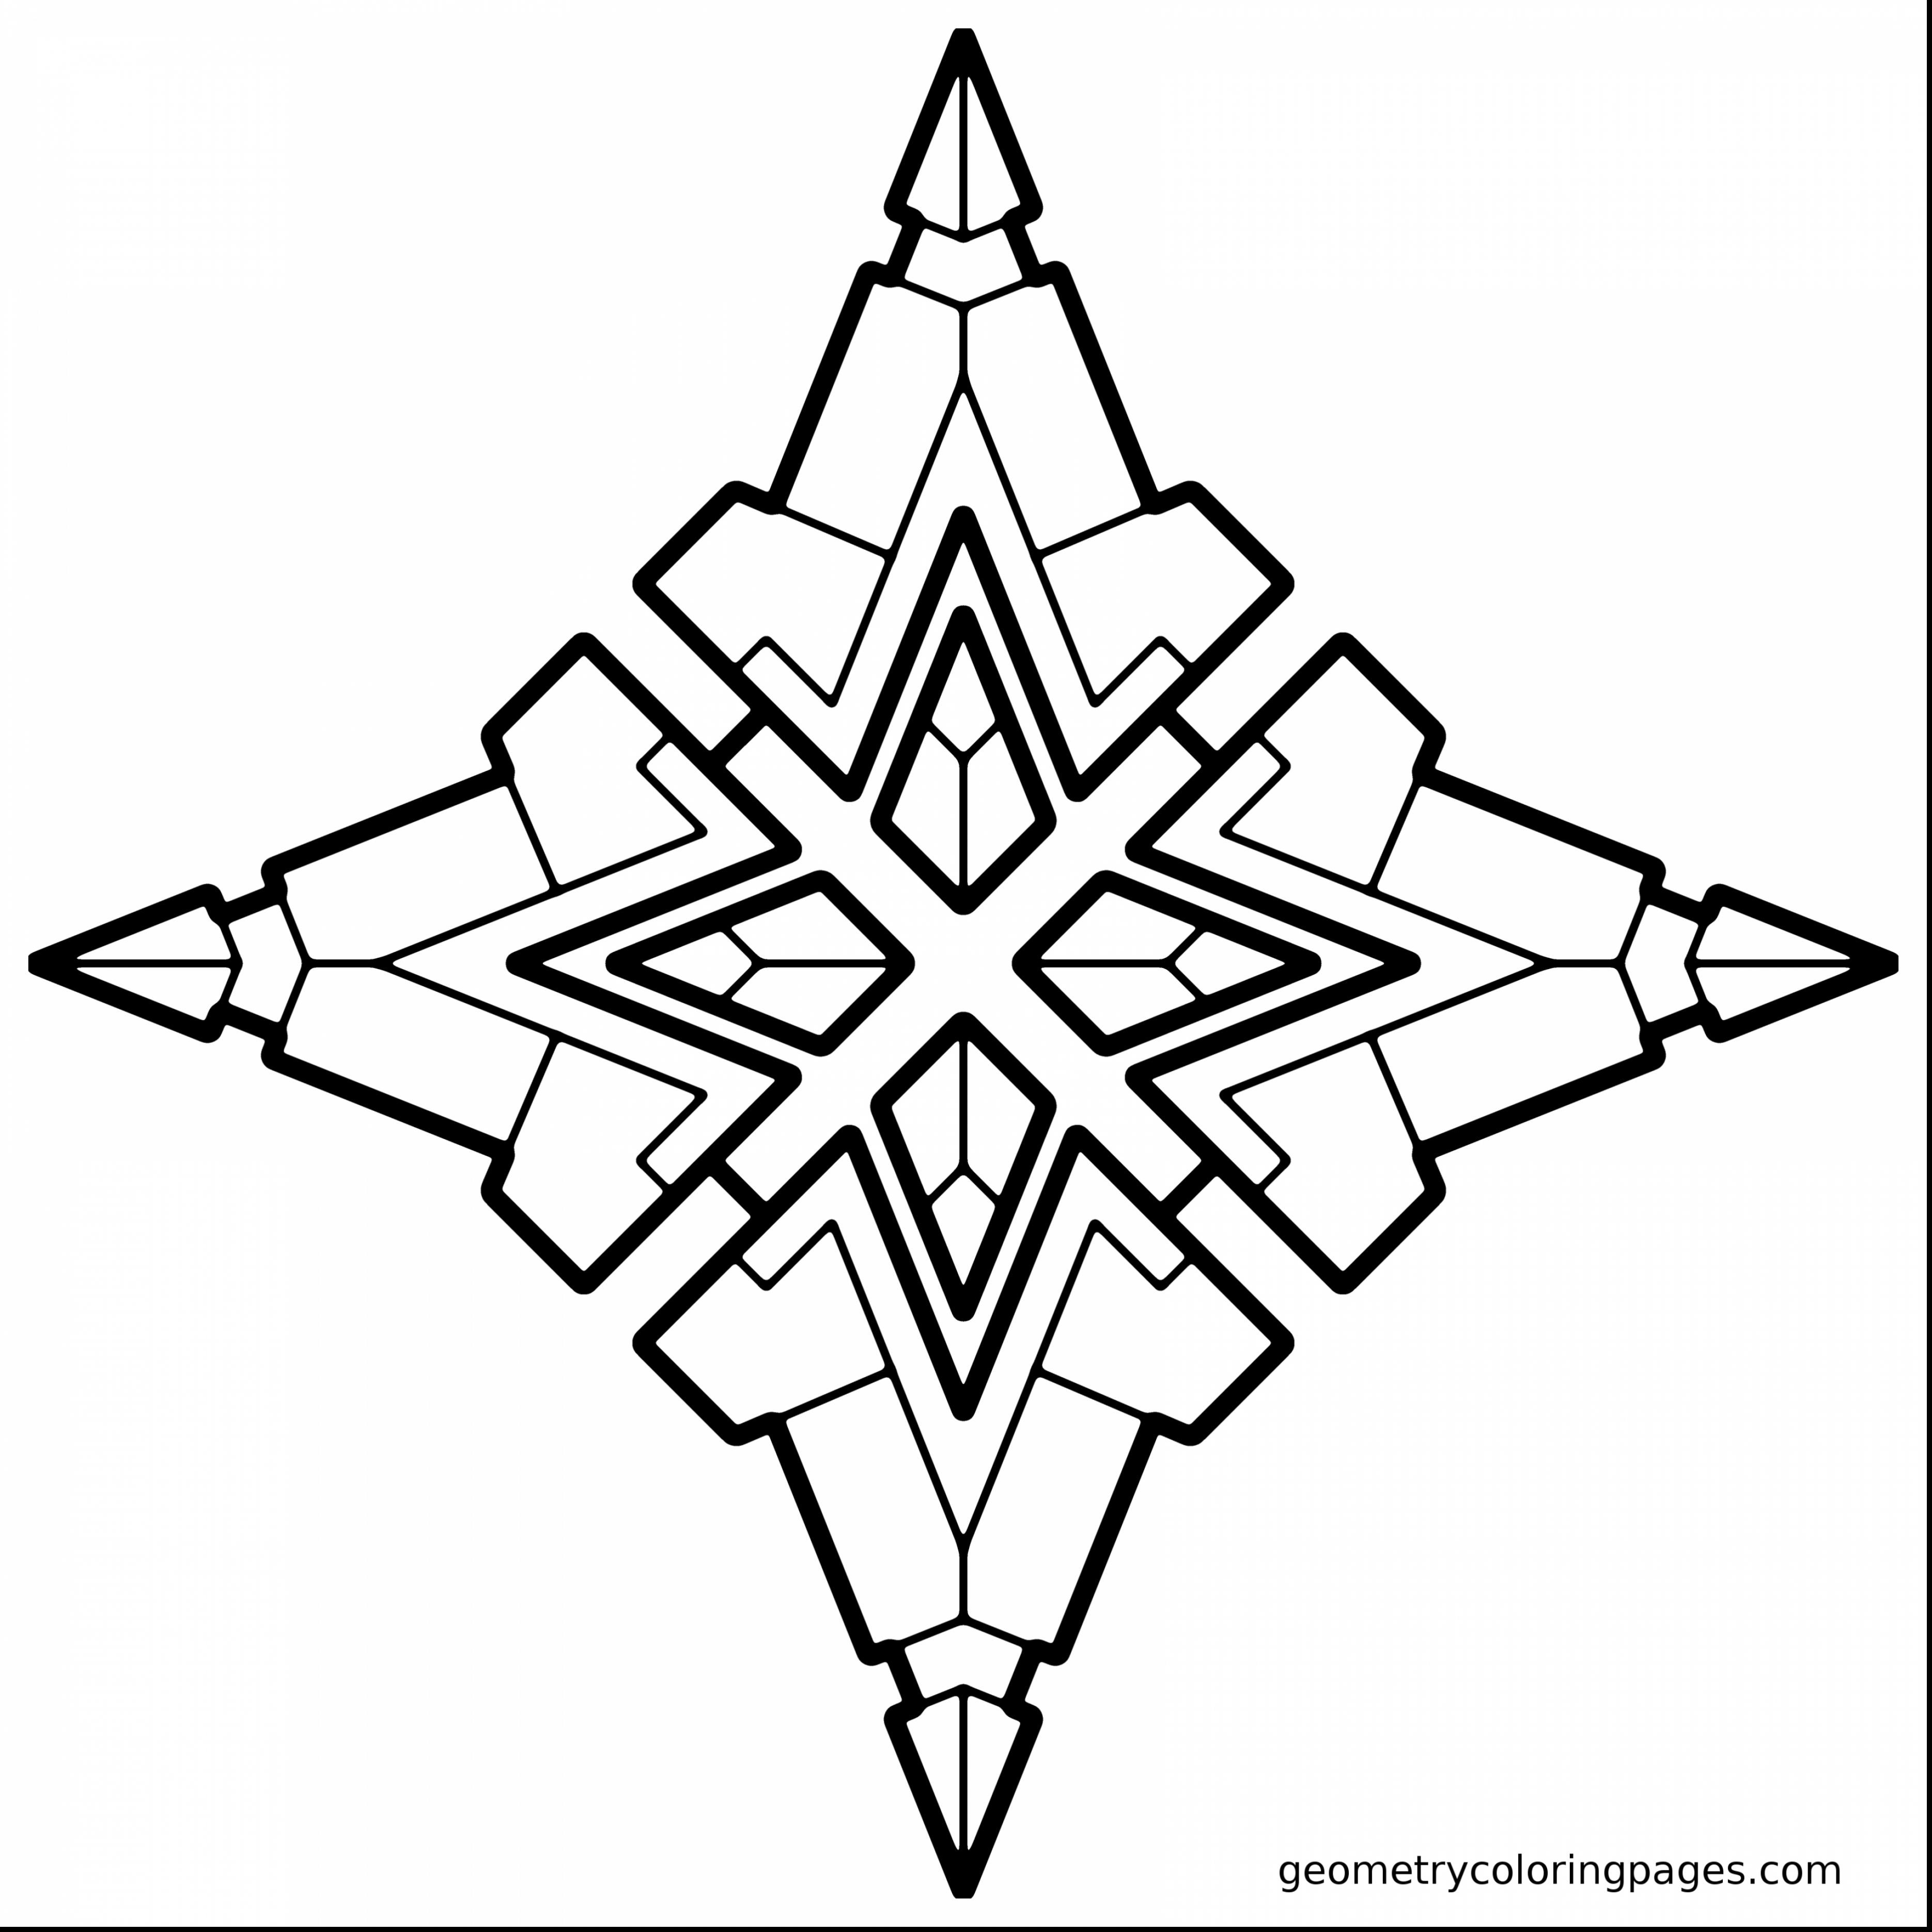 3740x3740 Geometric Coloring Pages Free Draw To Color